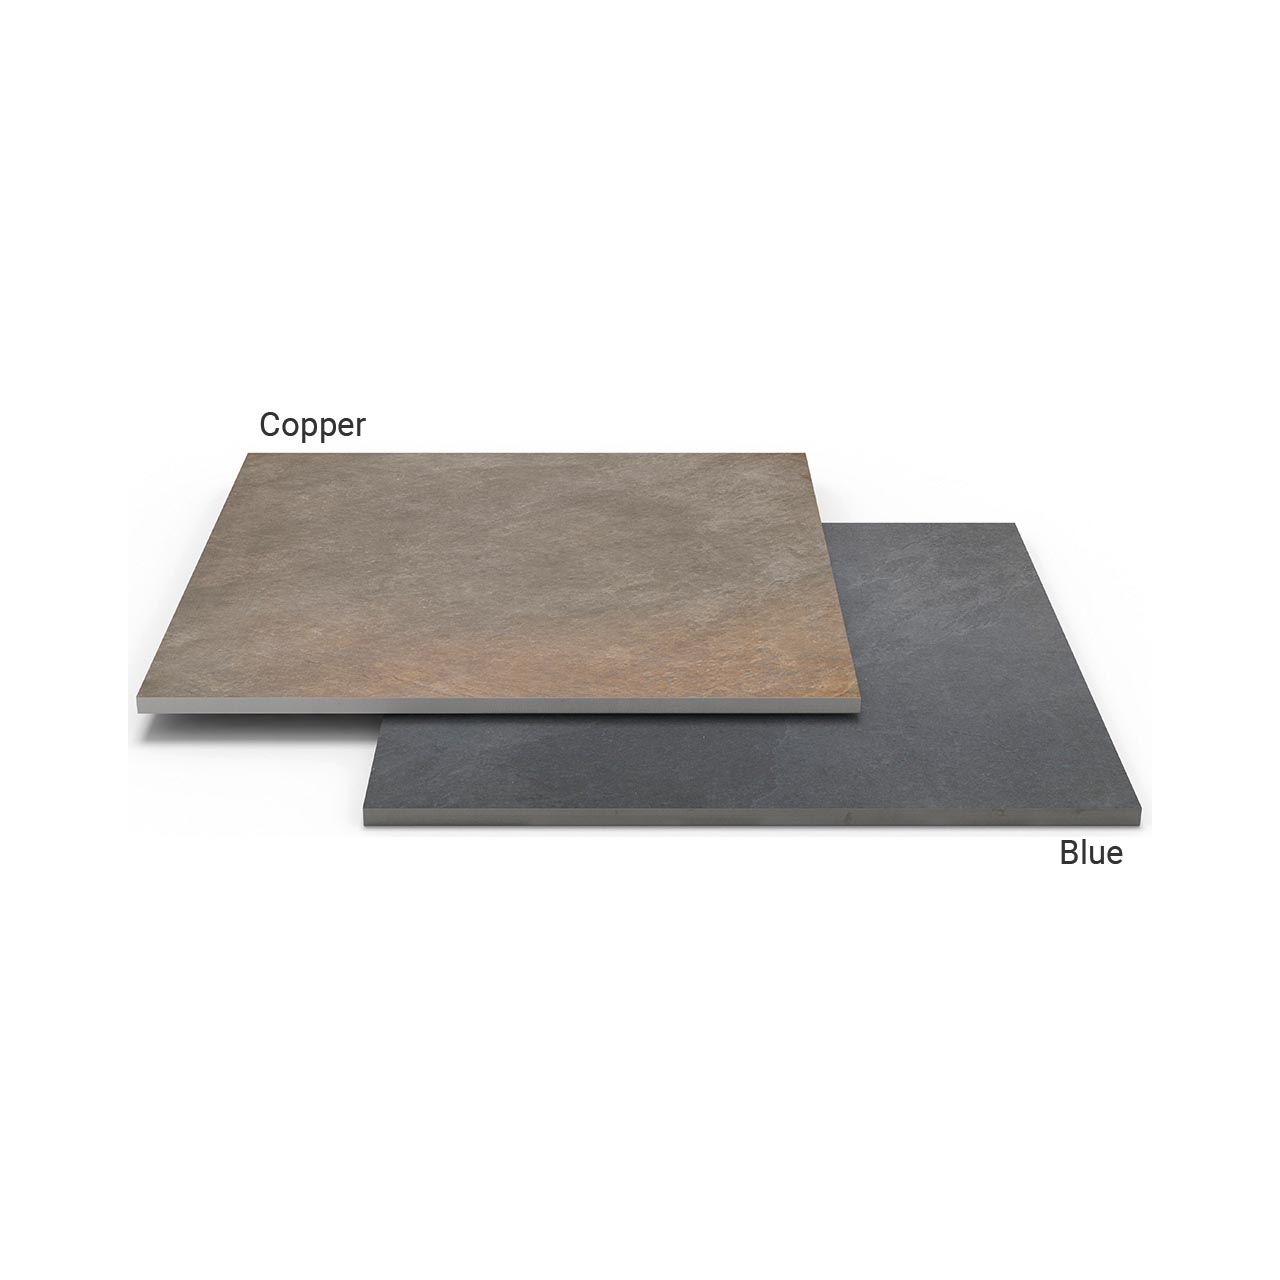 Lucent Paving 600mm x 600mm x 20mm Copper image 0